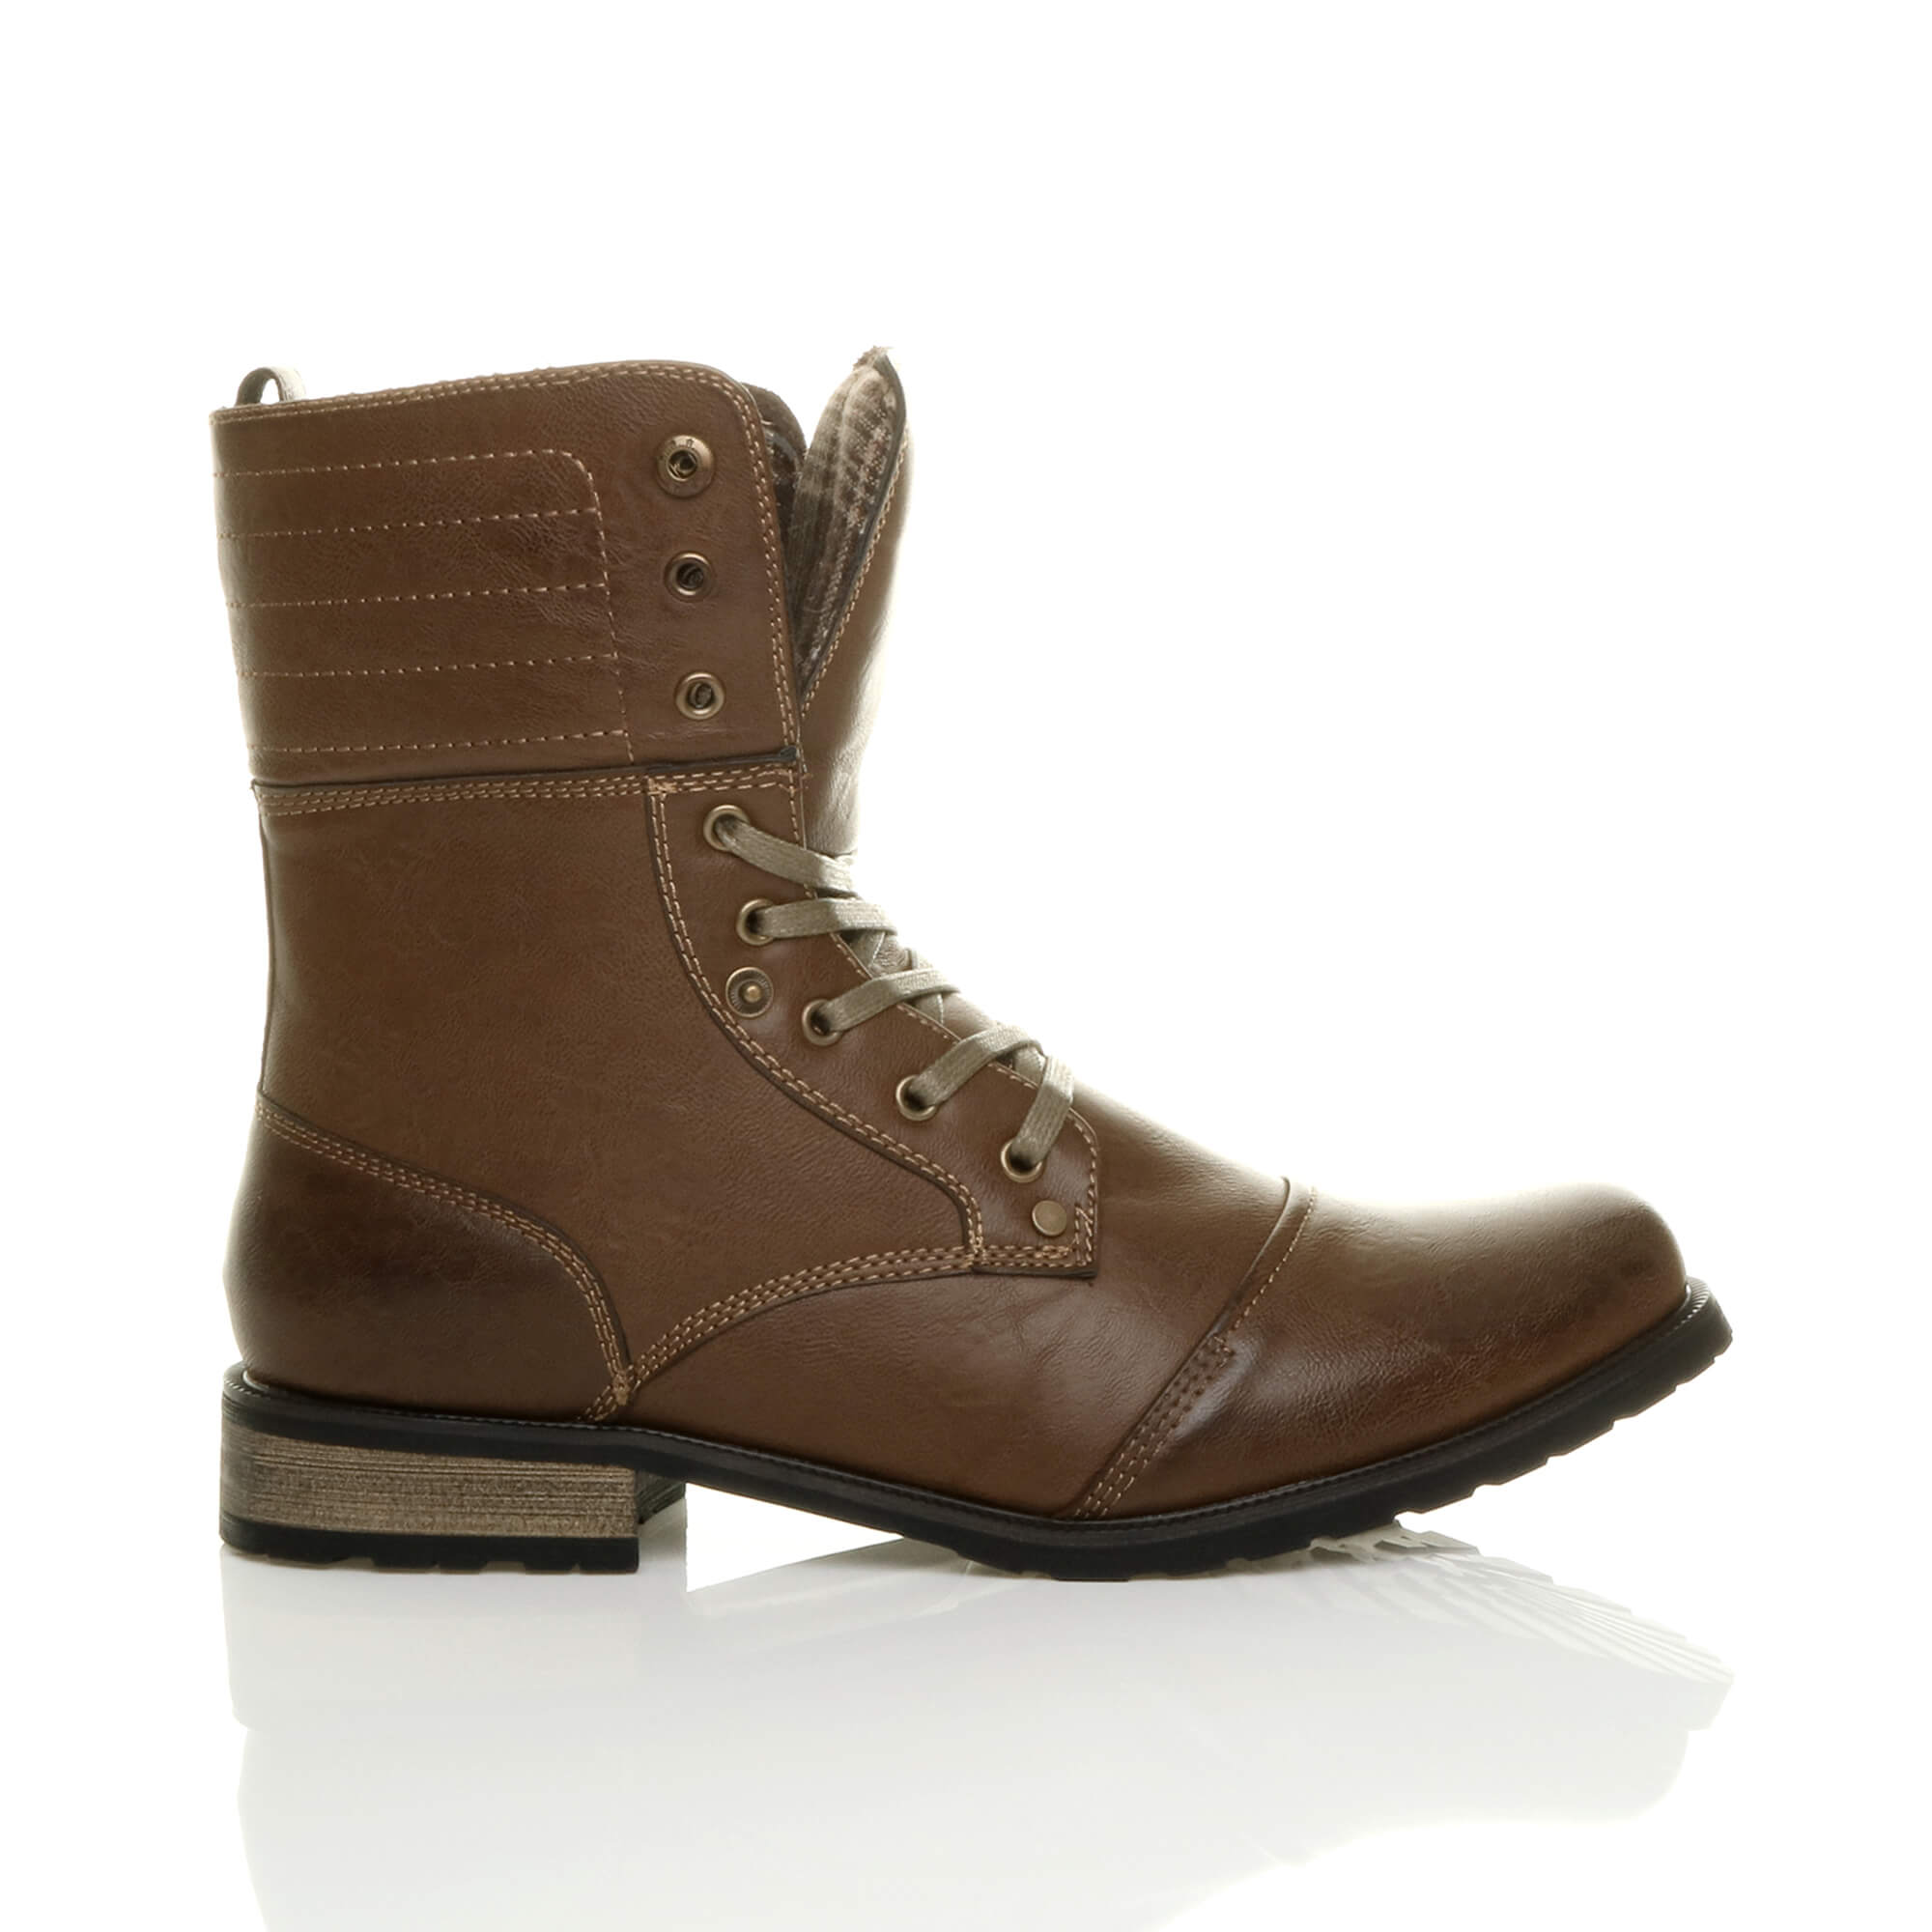 Mens-lace-up-low-heel-flat-fold-over-padded-cuff-military-ankle-boots-size miniatuur 11